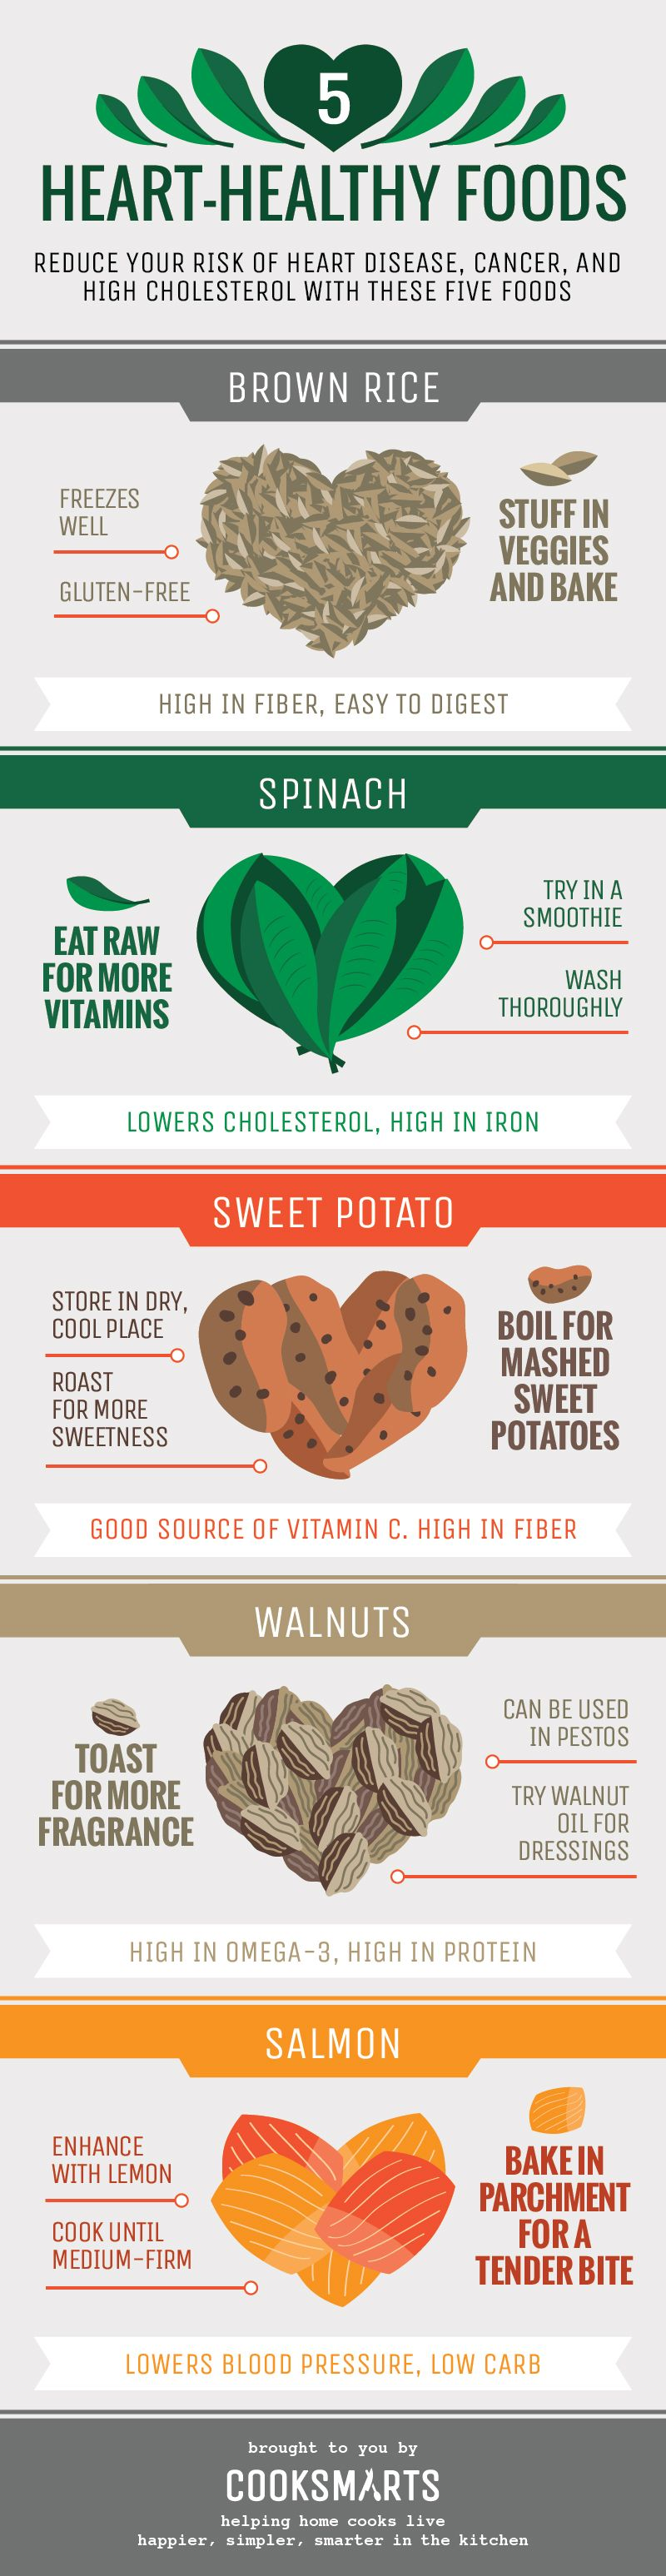 treat yourself right with 5 heart healthy foods heart